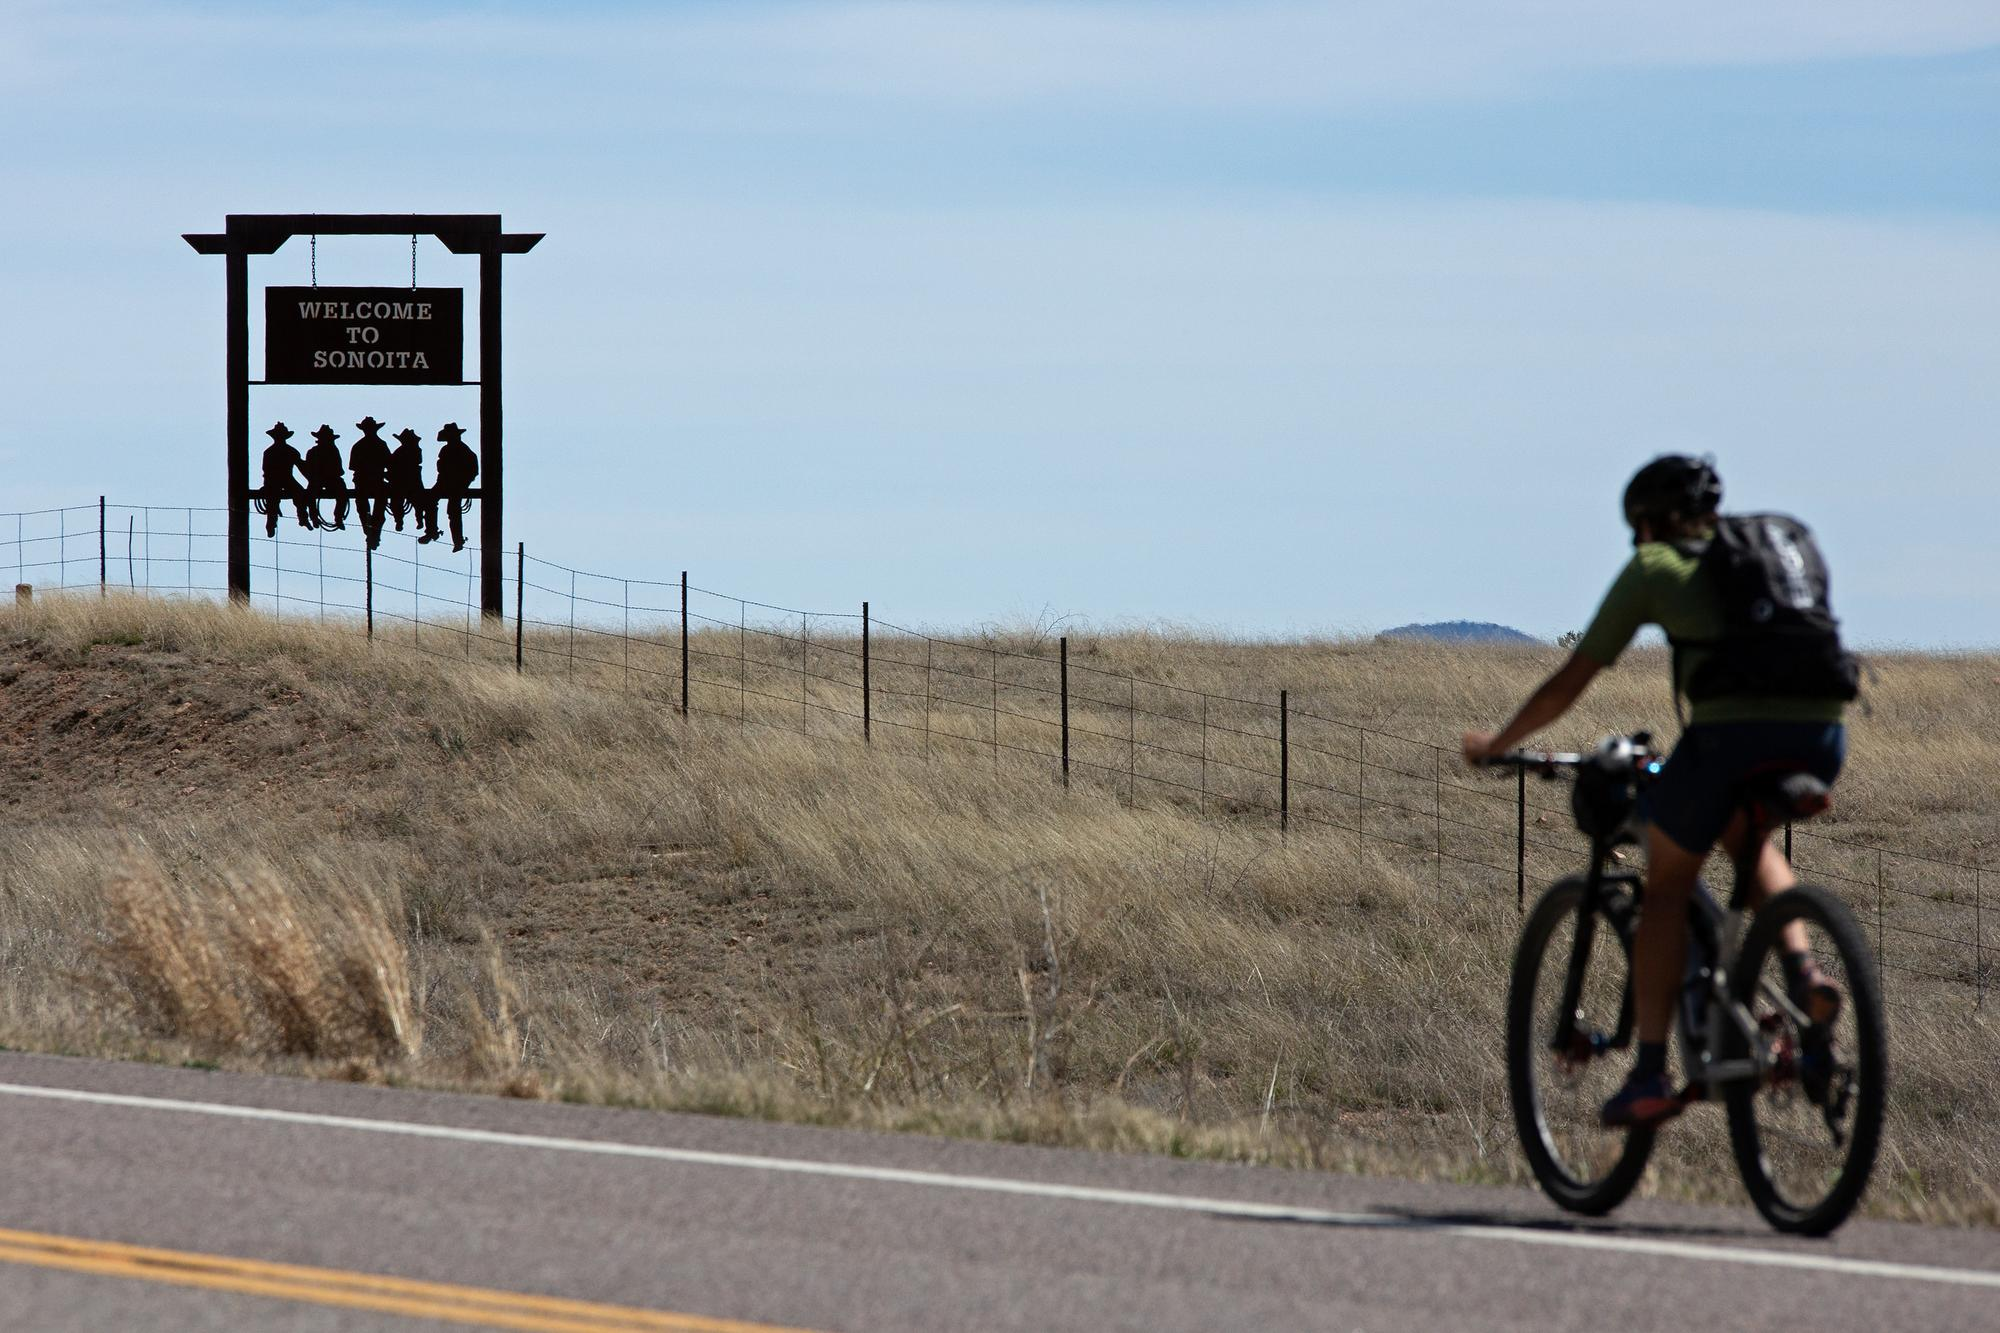 Lael coming into Sonoita. Mile 43 of the AZT 300. (Rugile Kaladyte)